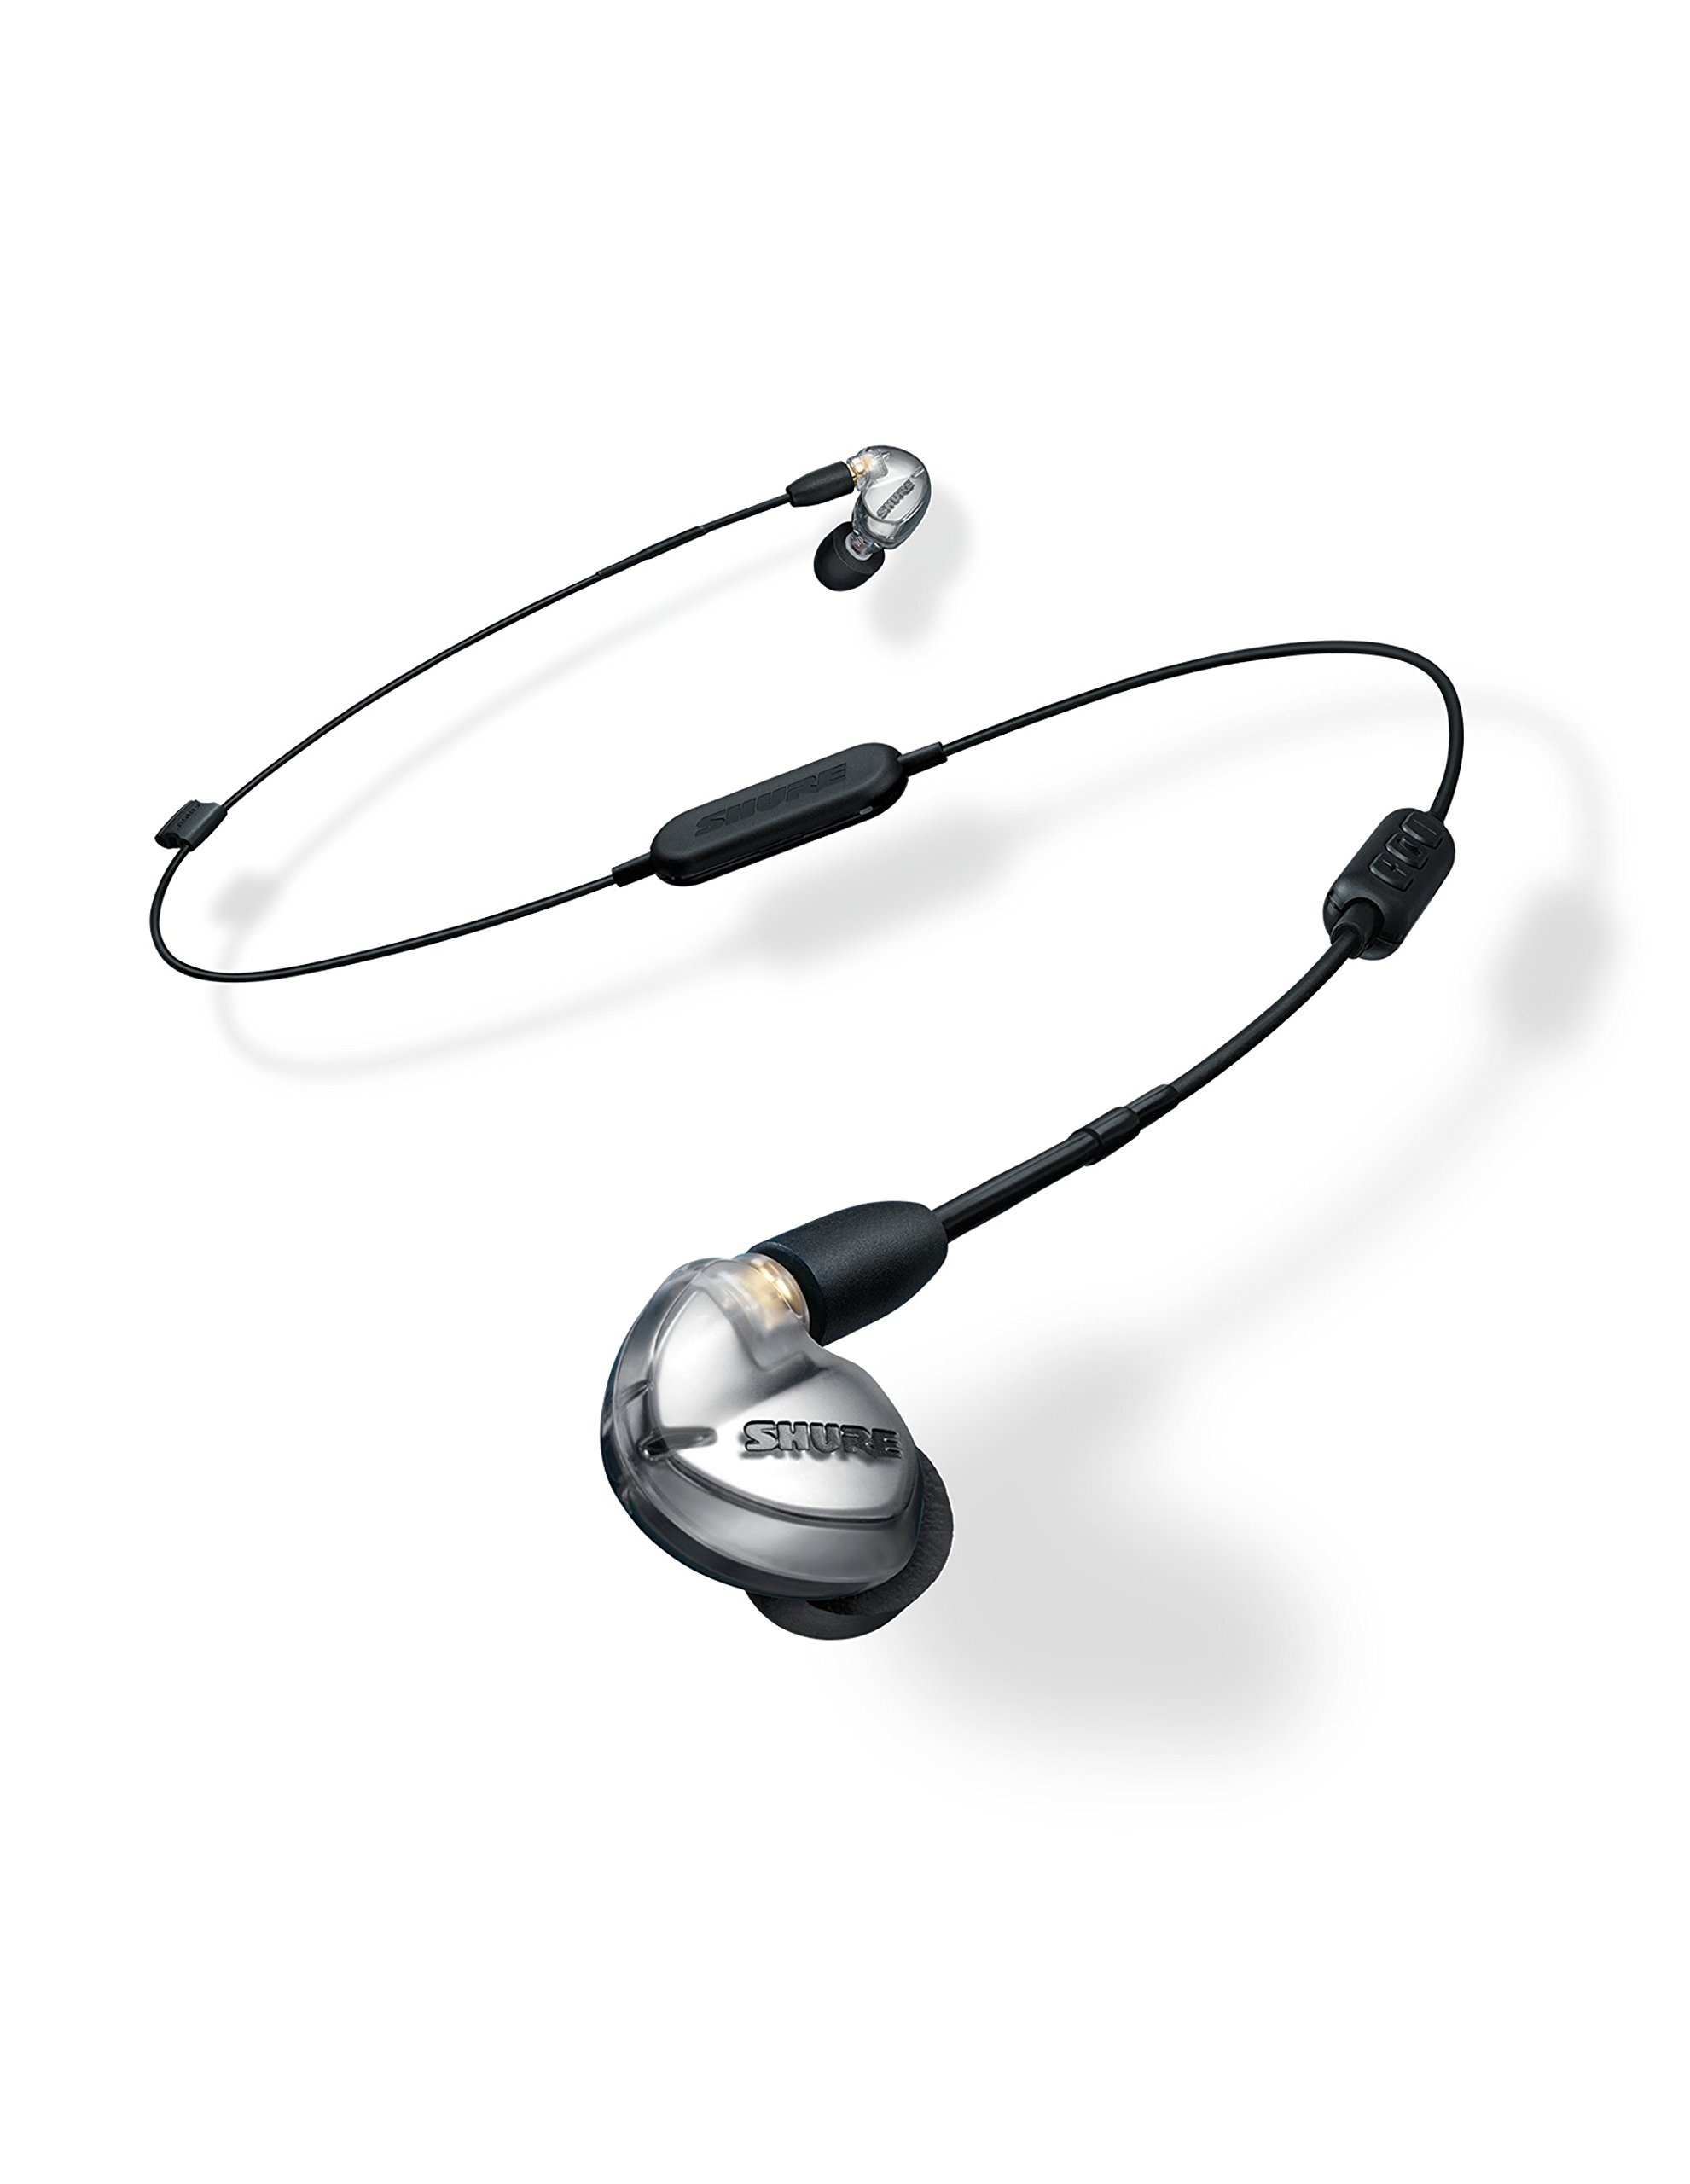 슈어 SE425-V+BT1 무선 이어폰 Shure SE425-V+BT1 Wireless Sound Isolating Earphones with Bluetooth Enabled Communication Cable, Silver